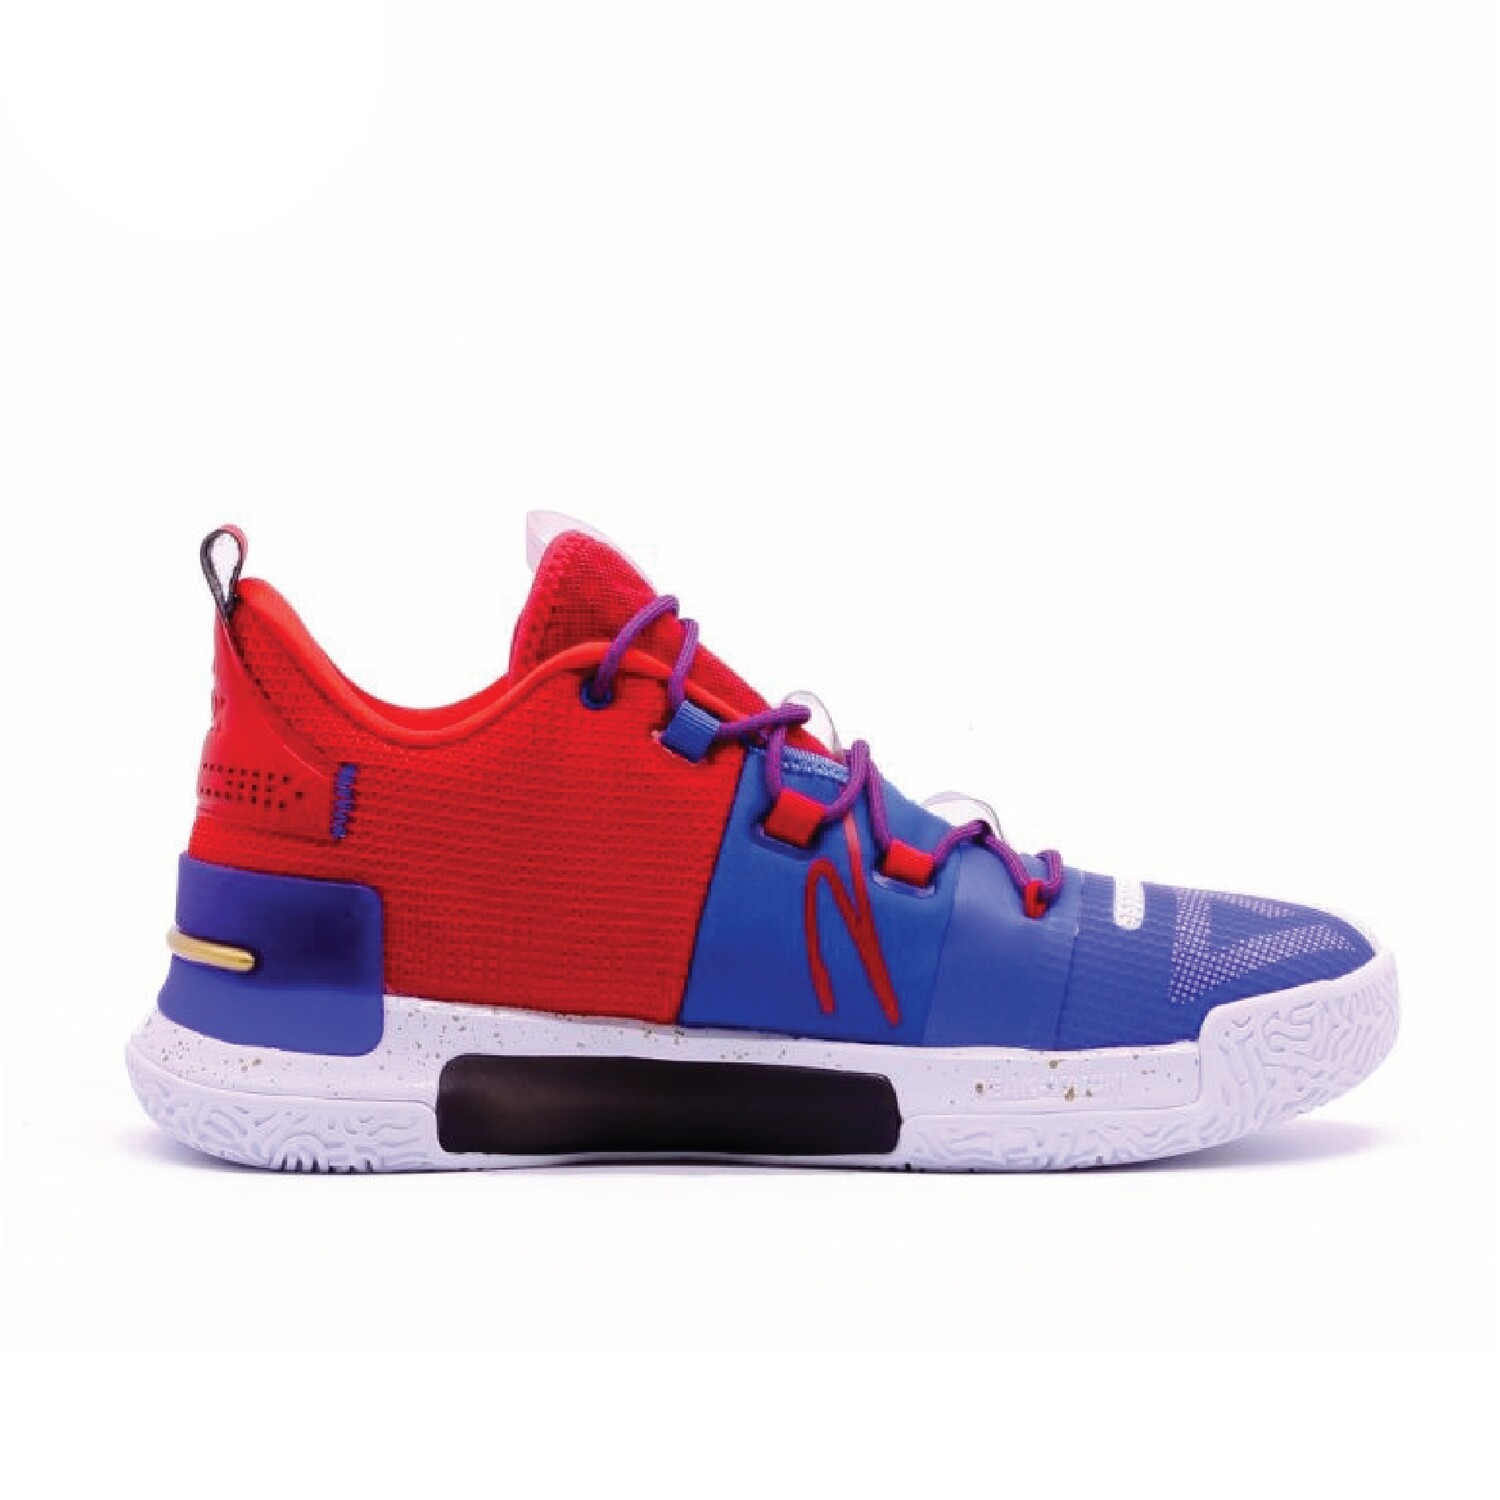 Taichi Flash Lou Williams Basketball Shoes